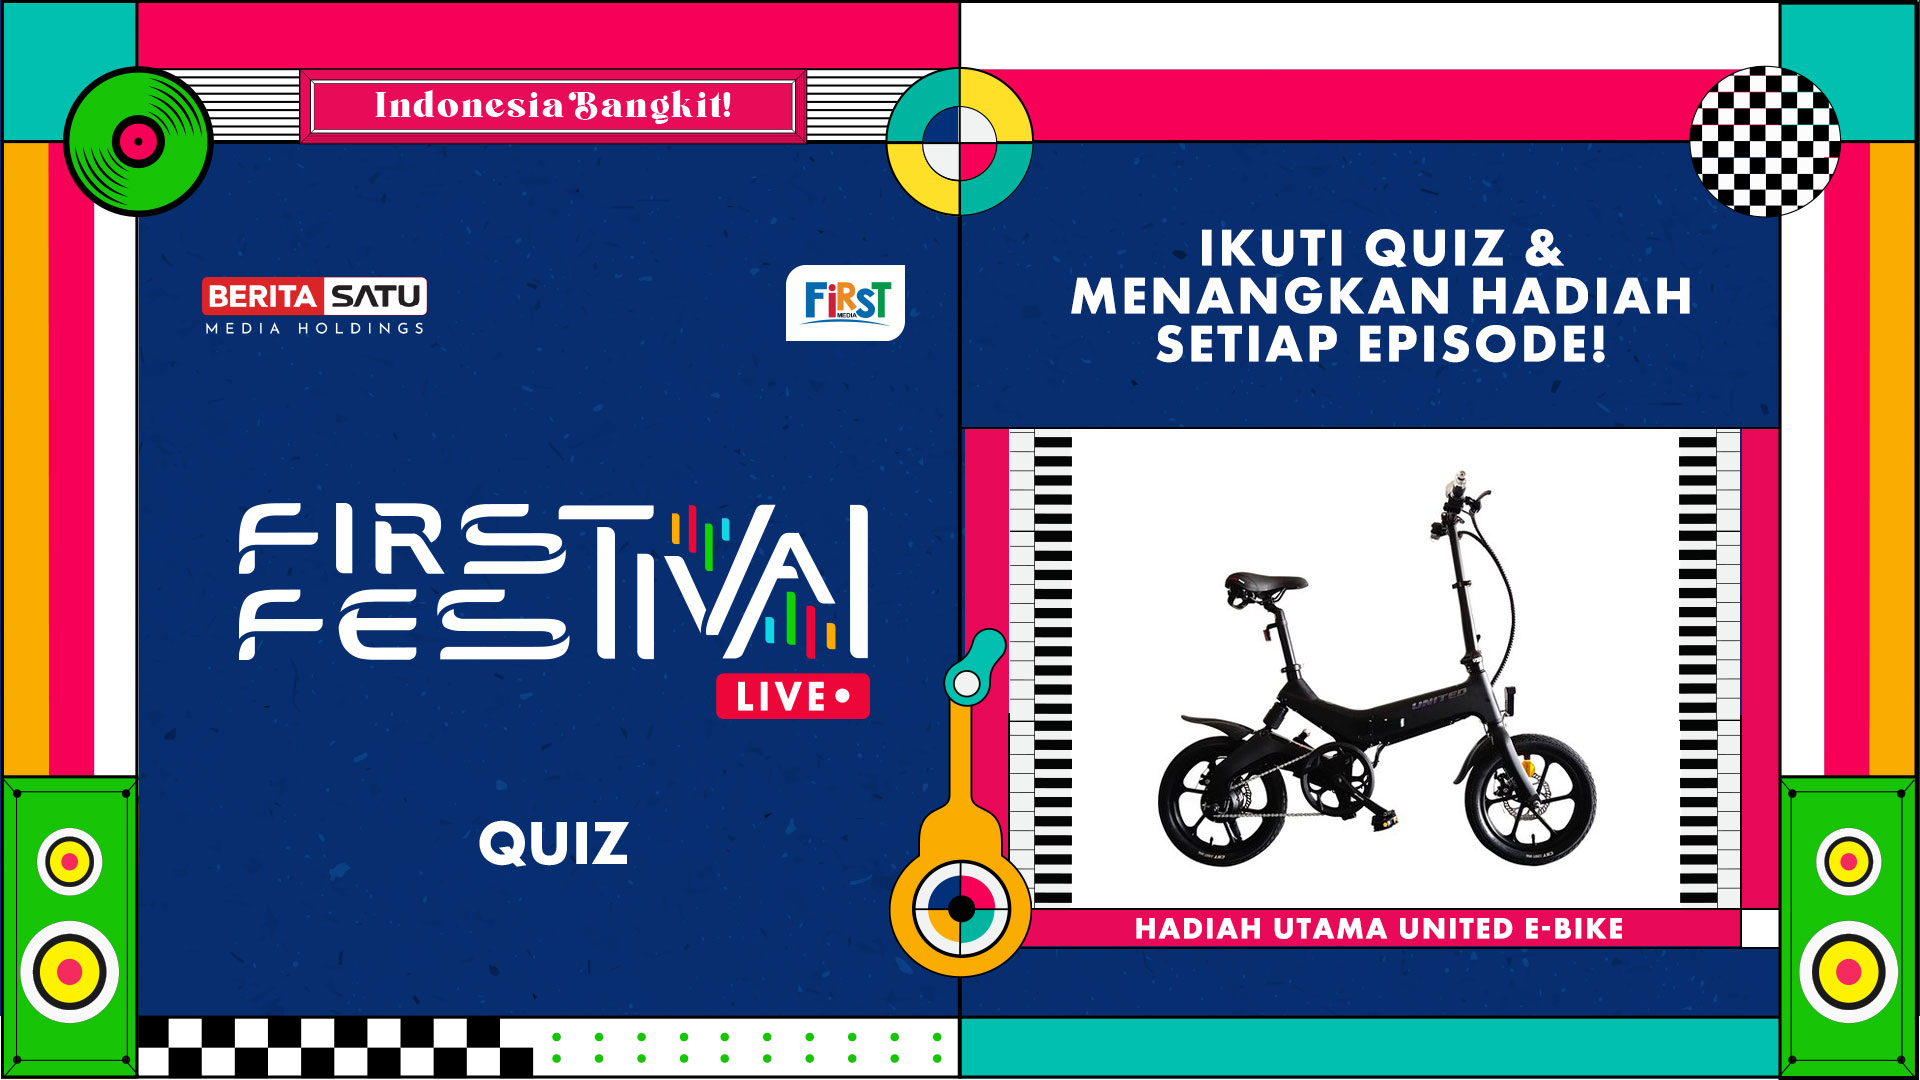 First Festival Live Quiz